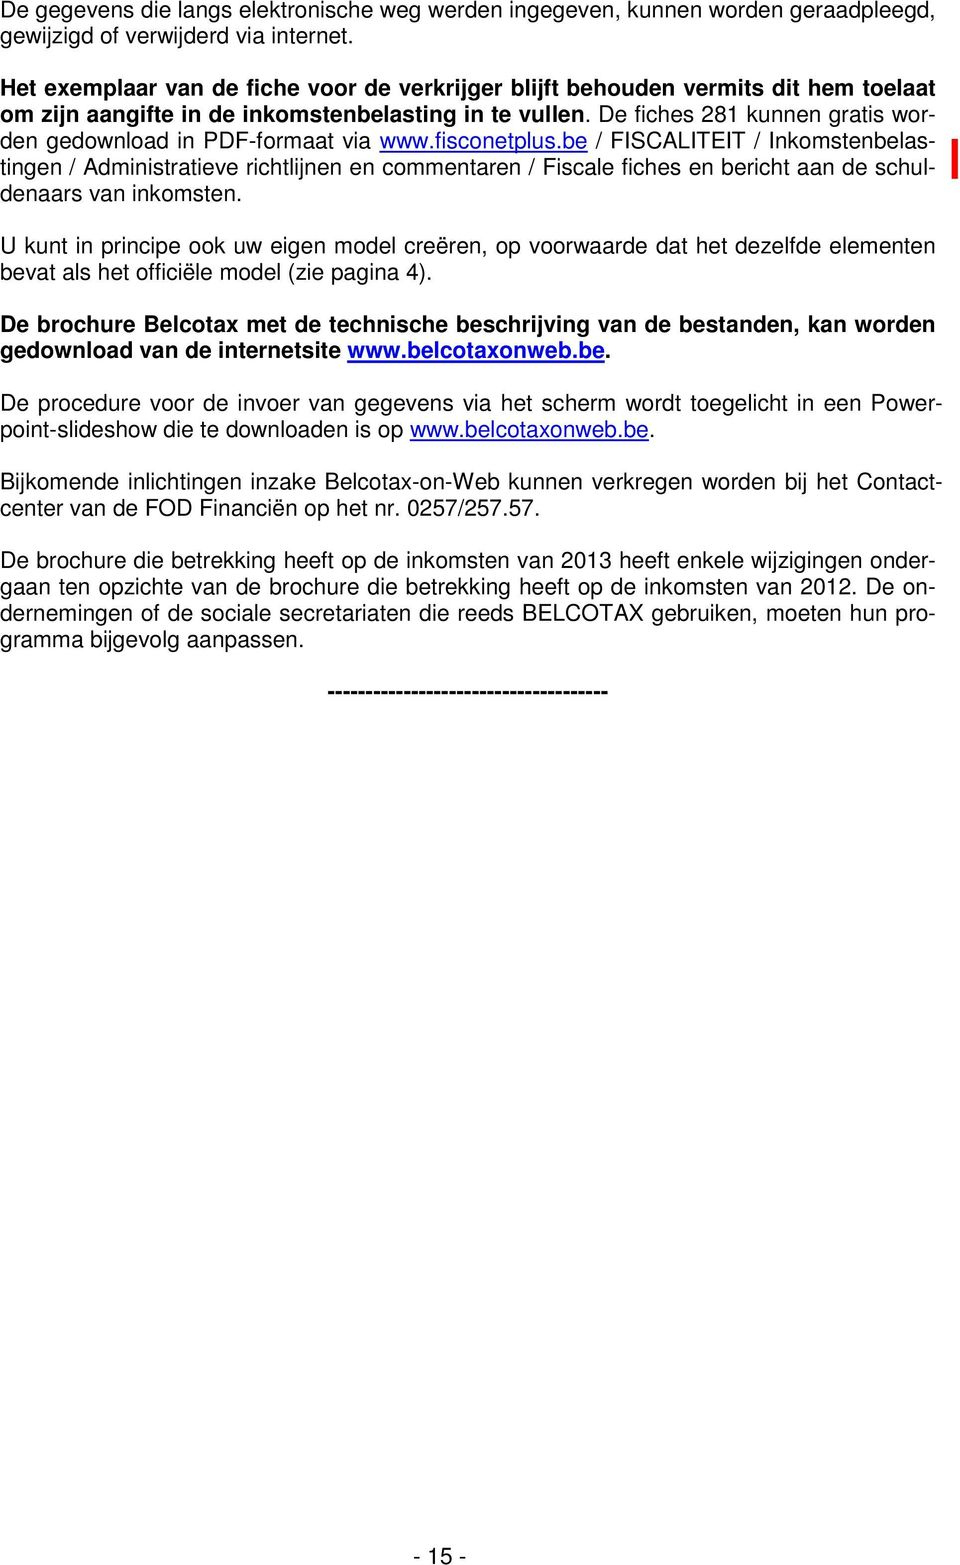 De fiches 281 kunnen gratis worden gedownload in PDF-formaat via www.fisconetplus.